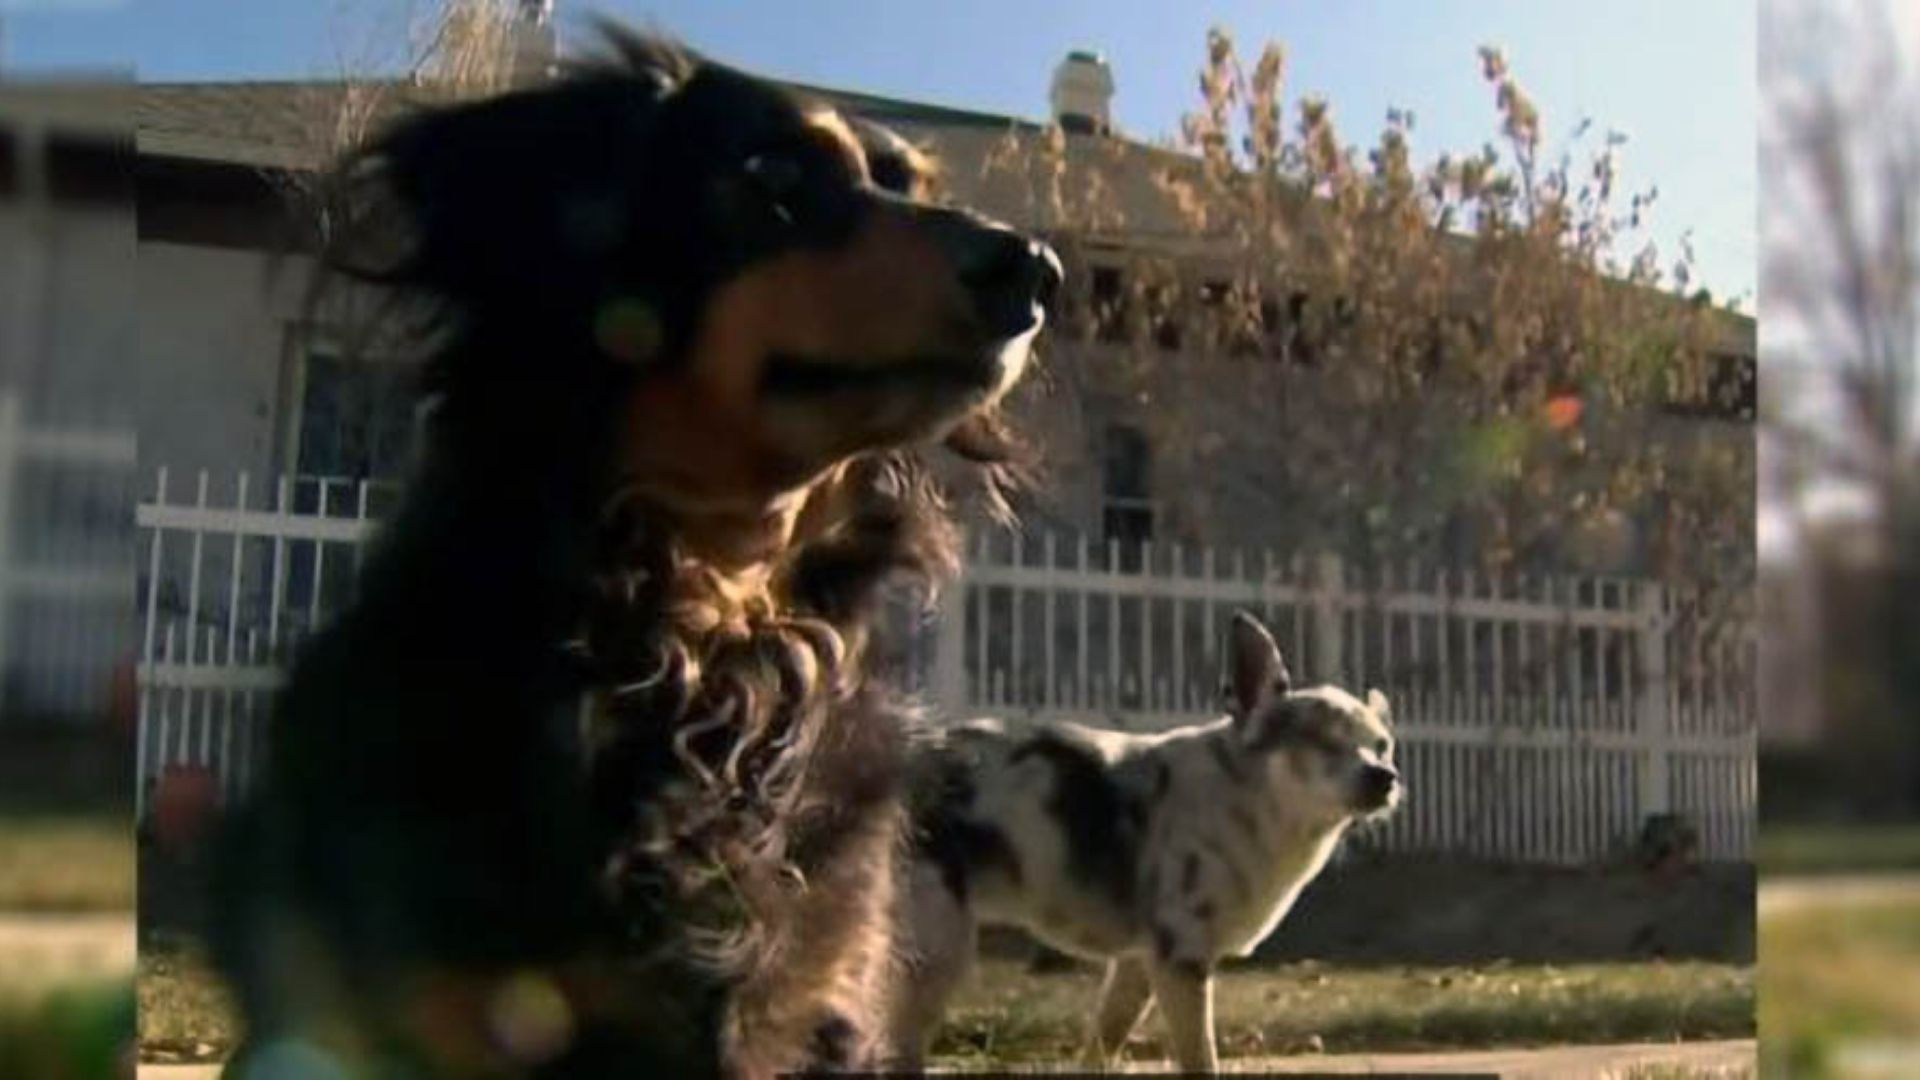 Brave Dachshund Saves Smaller Dog From Shocking Mountain Lion Attack